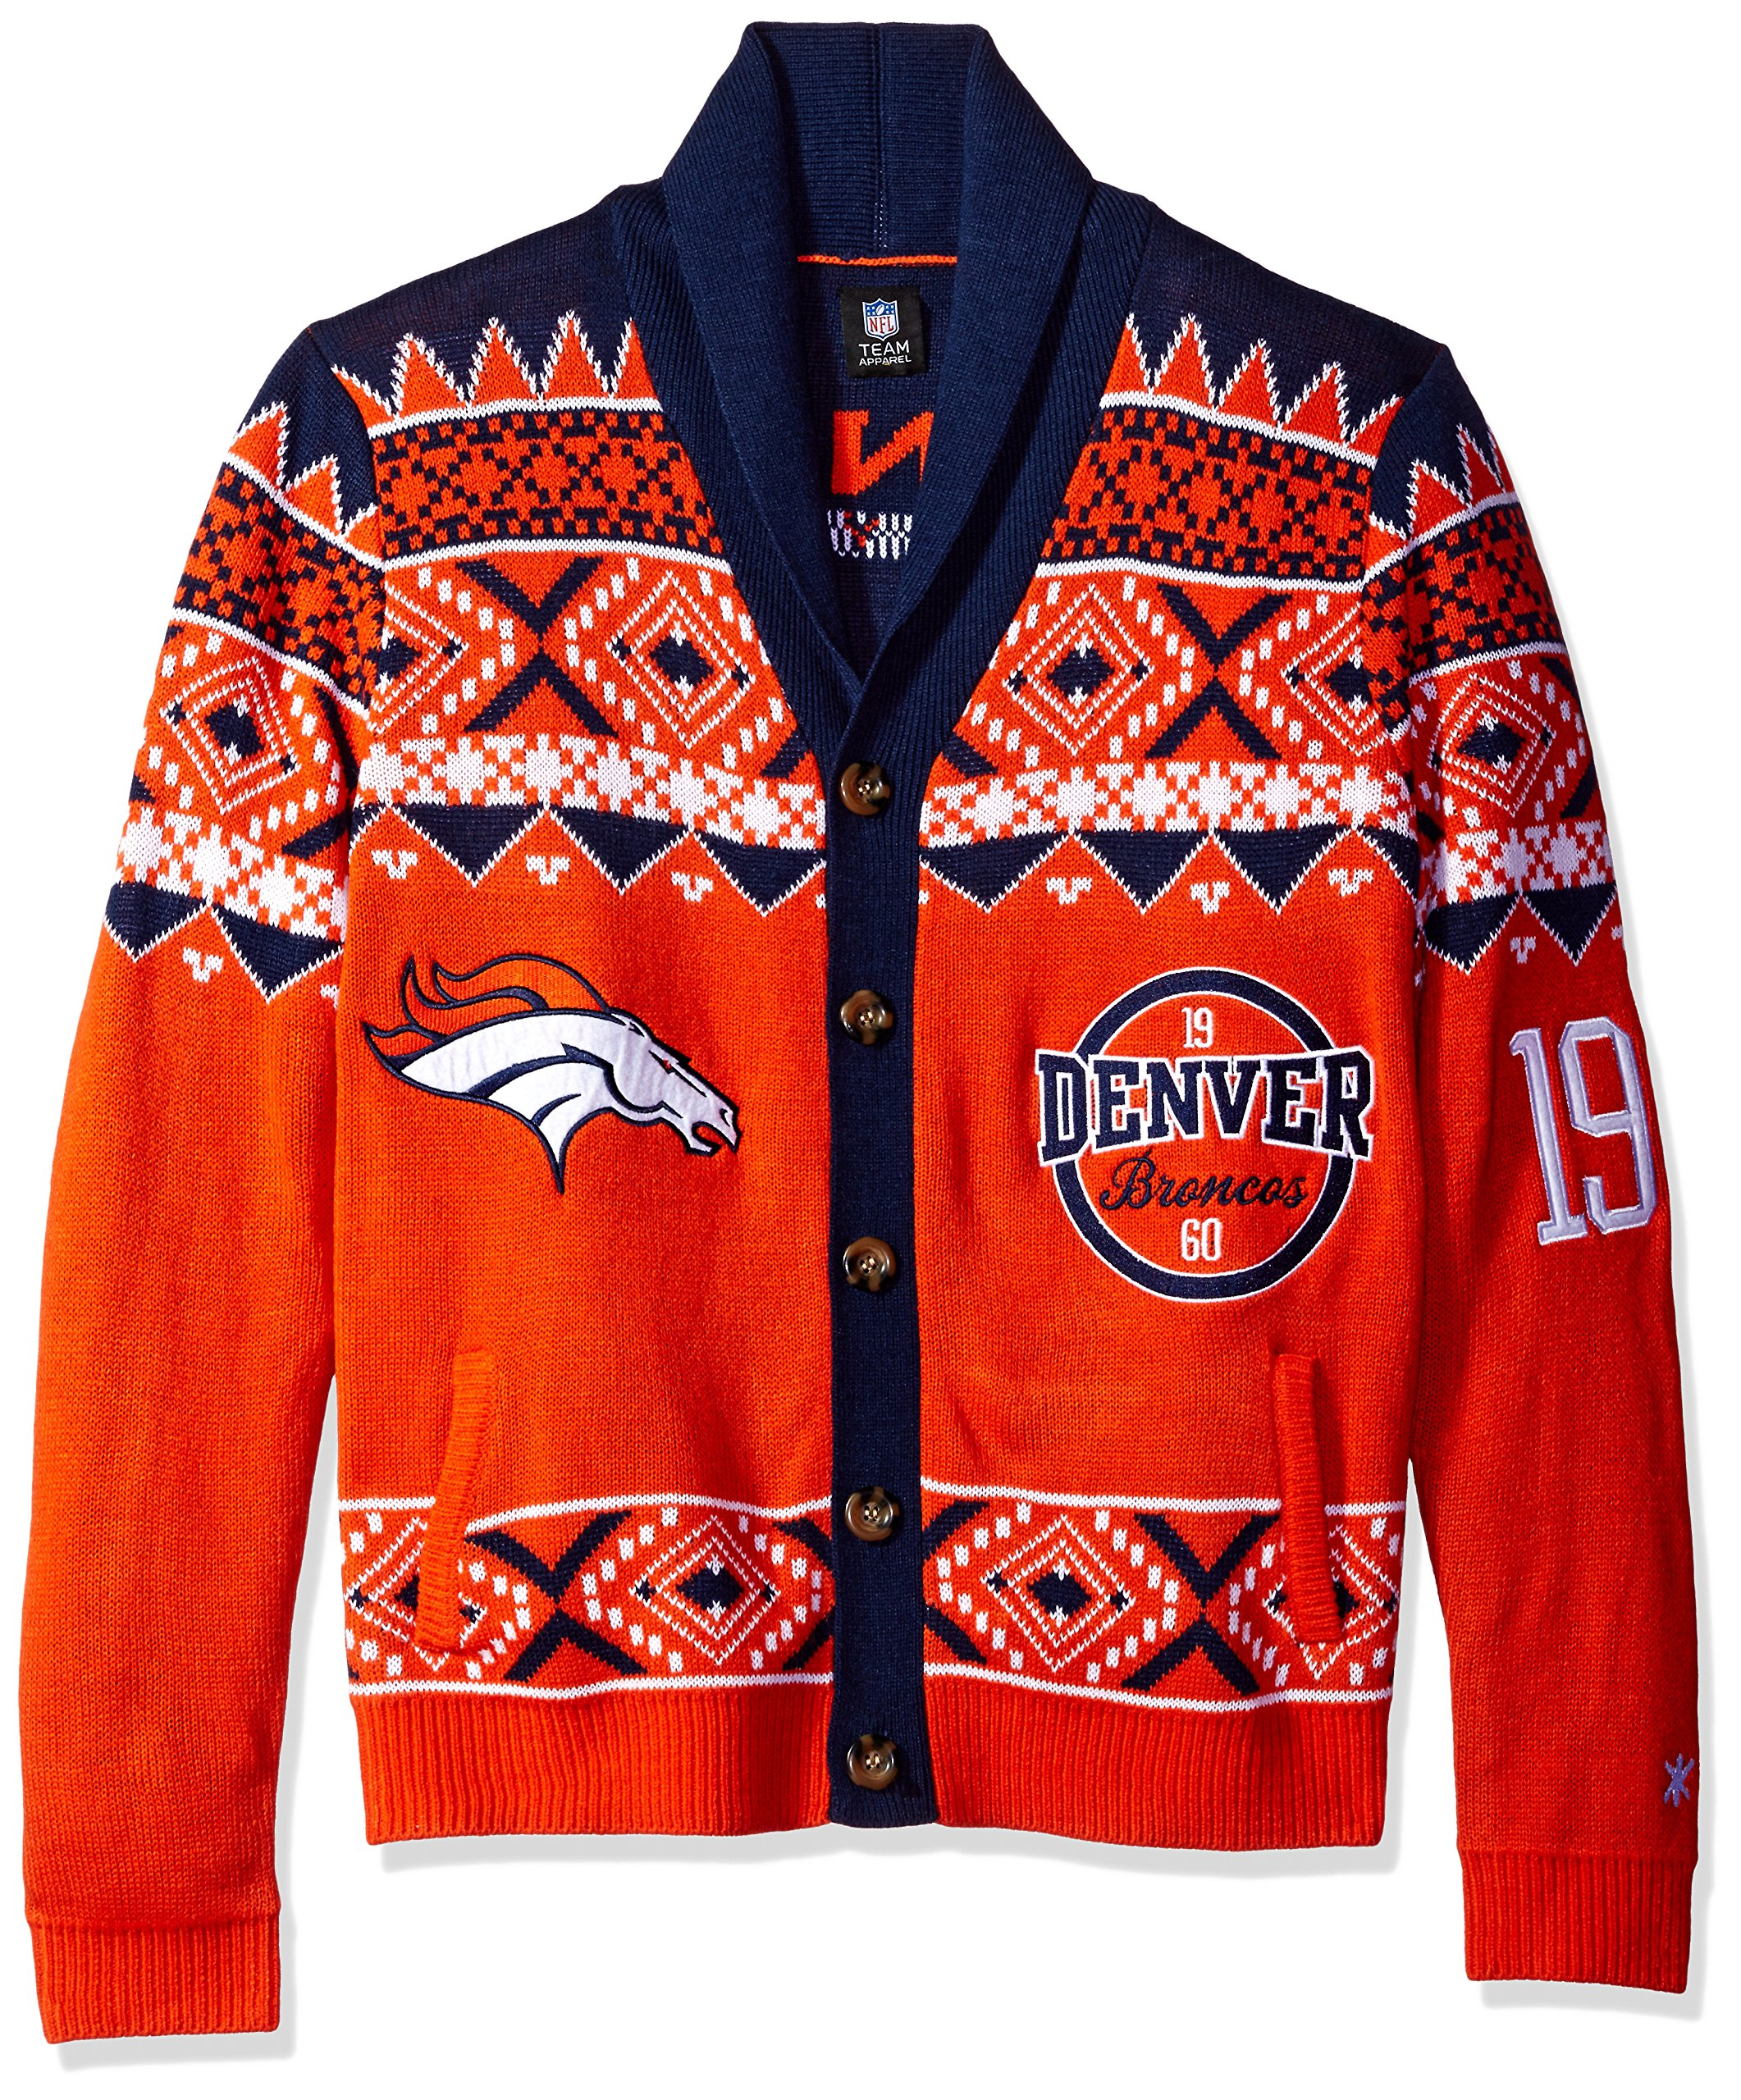 Denver Broncos 2015 Ugly Cardigan Double Extra Large